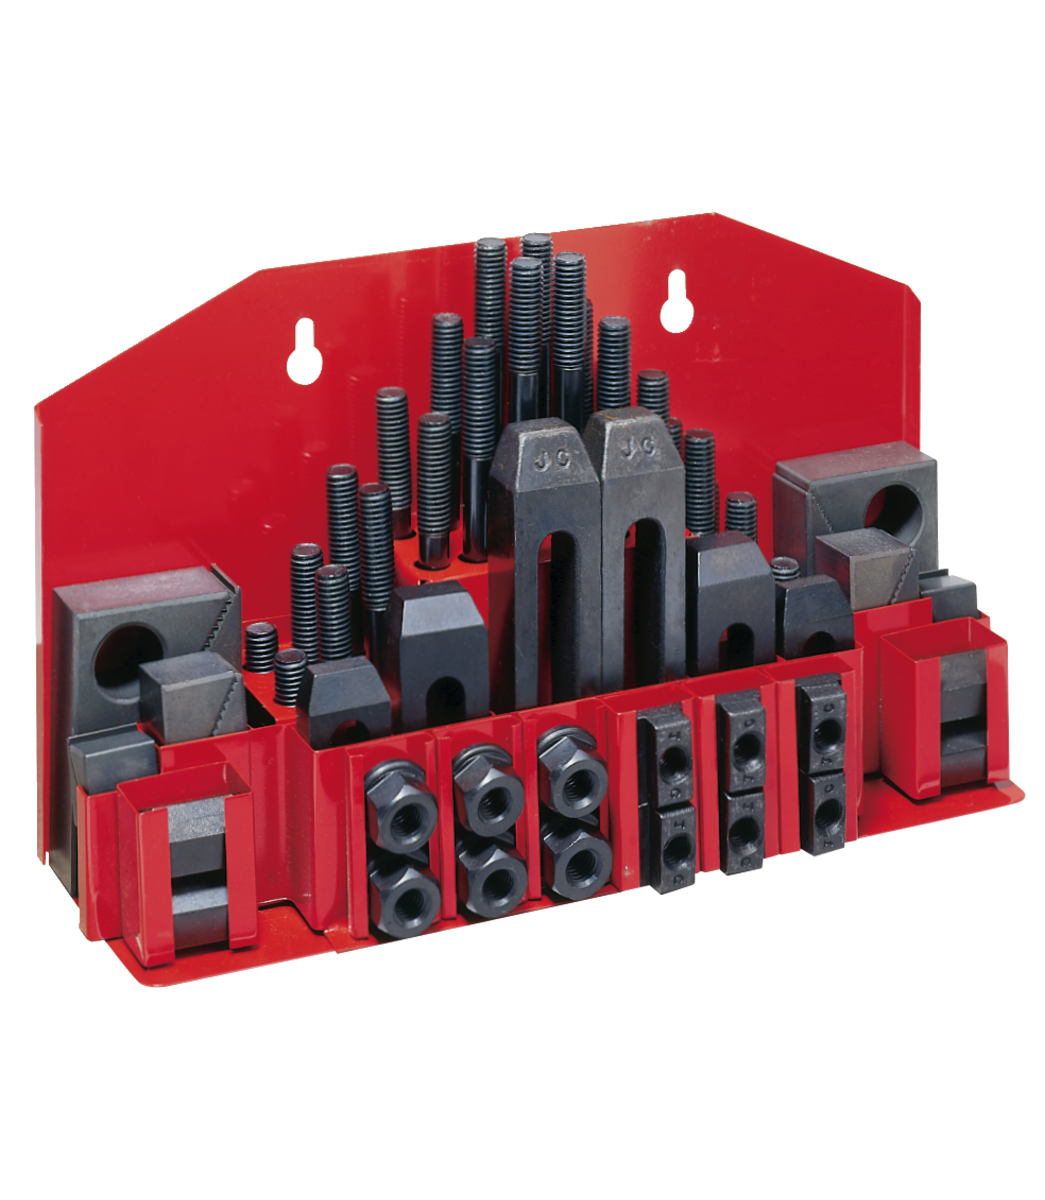 CK-12, 58-Piece Clamping Kit with Tray for T-Slot